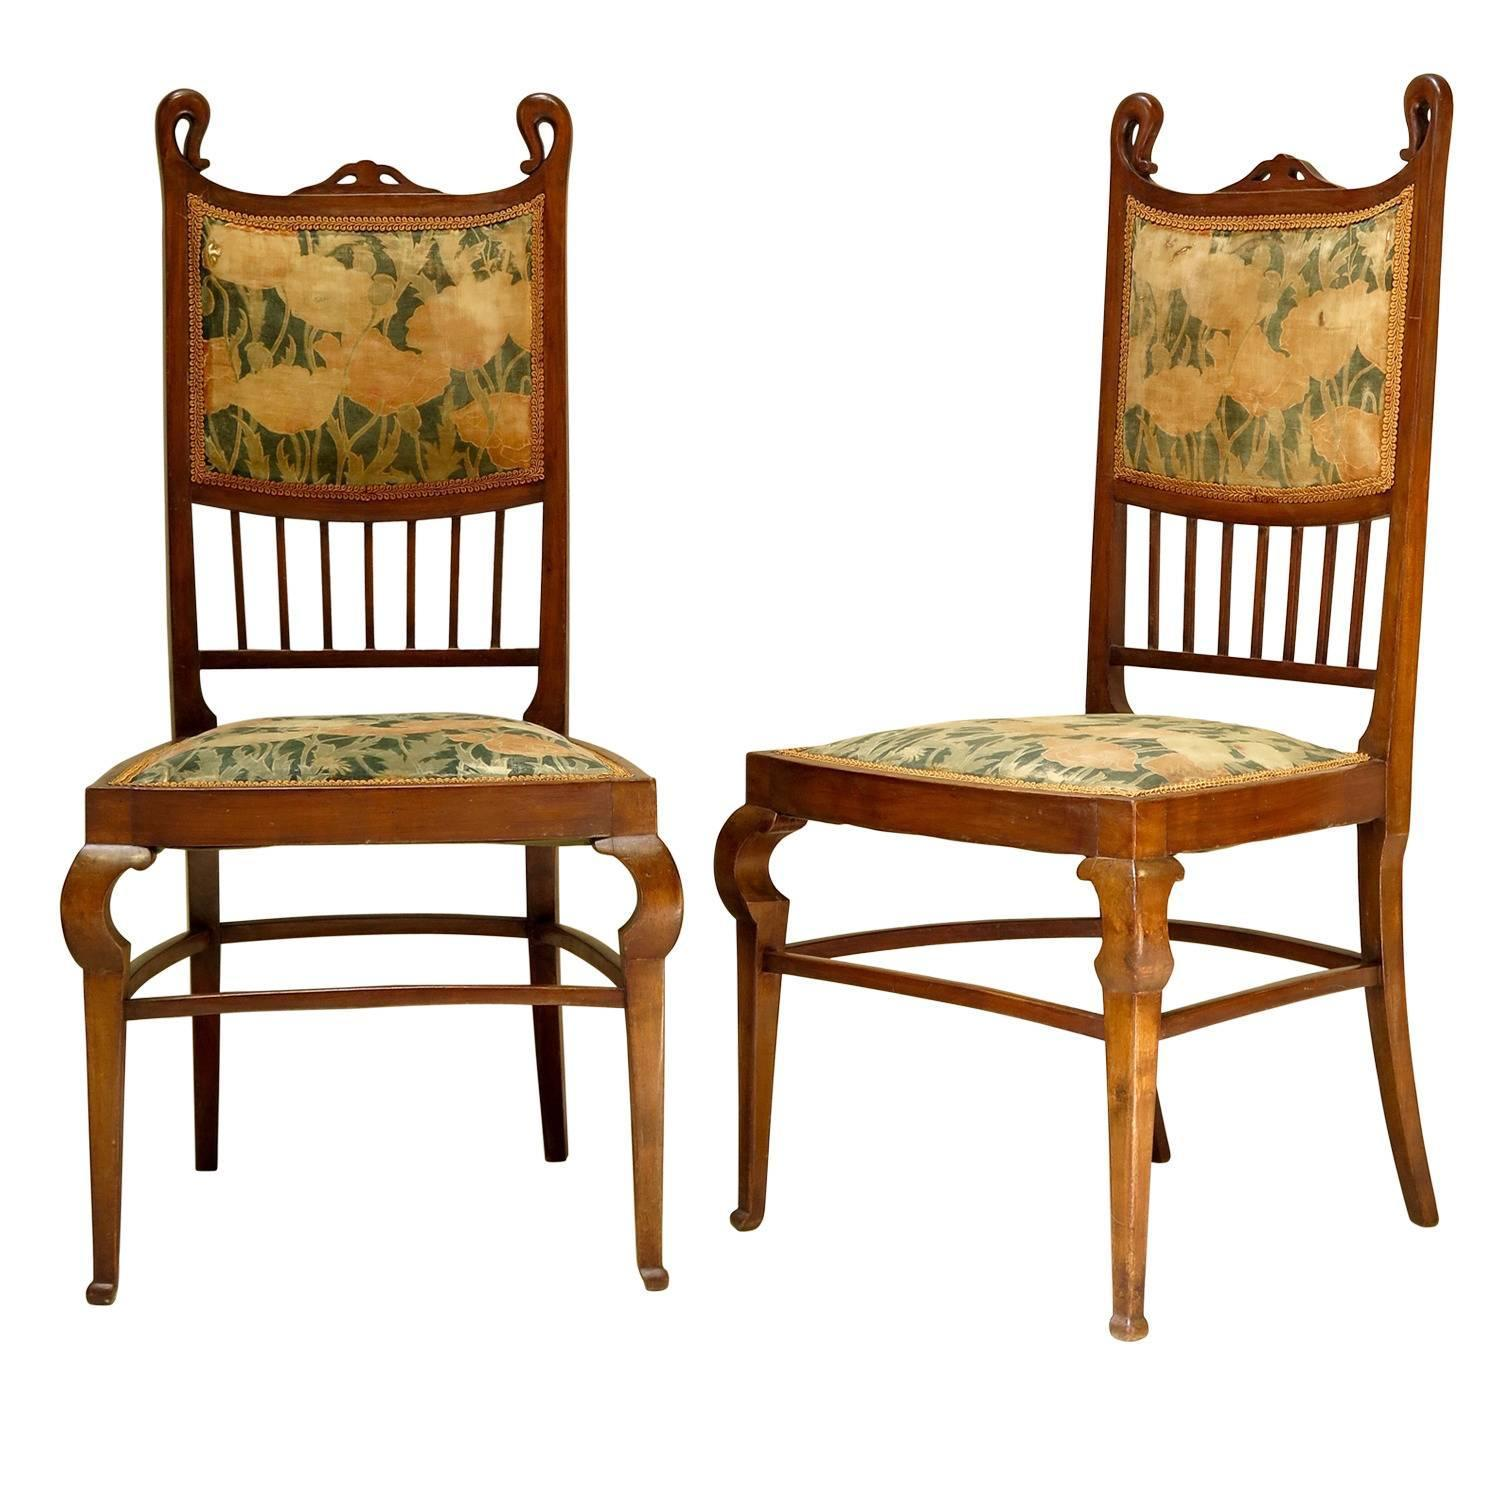 Set of Six Art Nouveau Dining Chairs France Early 1900s at 1stdibs